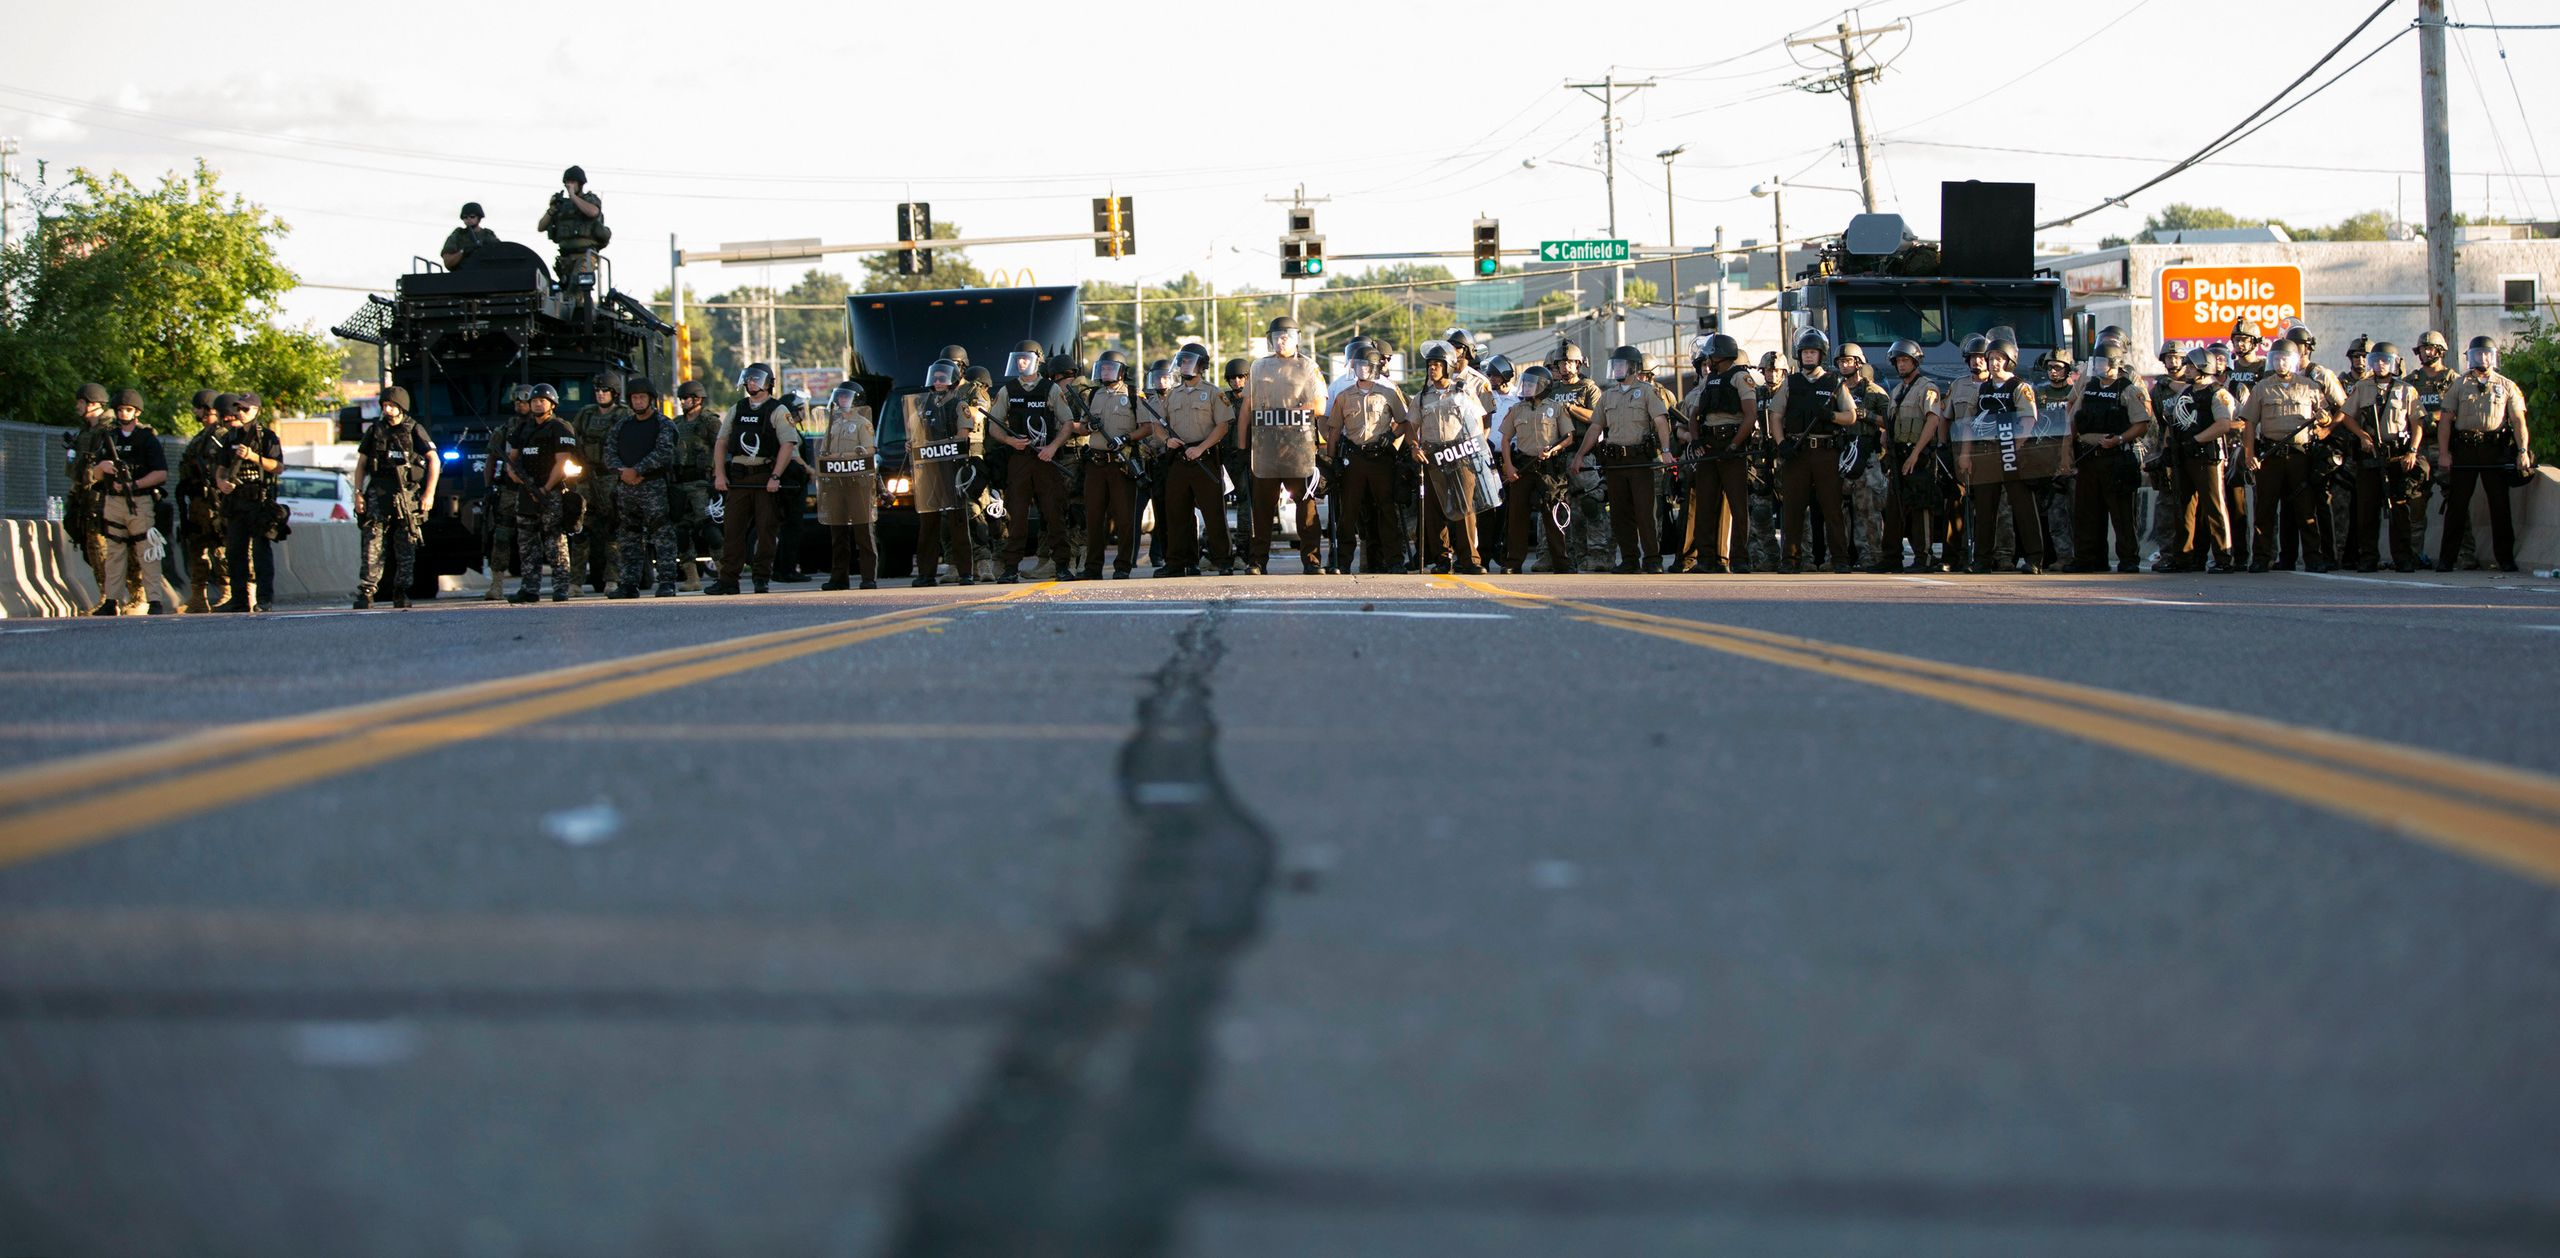 Police officers keep watch while demonstrators (not pictured) protest the death of black teenager Michael Brown in Ferguson,